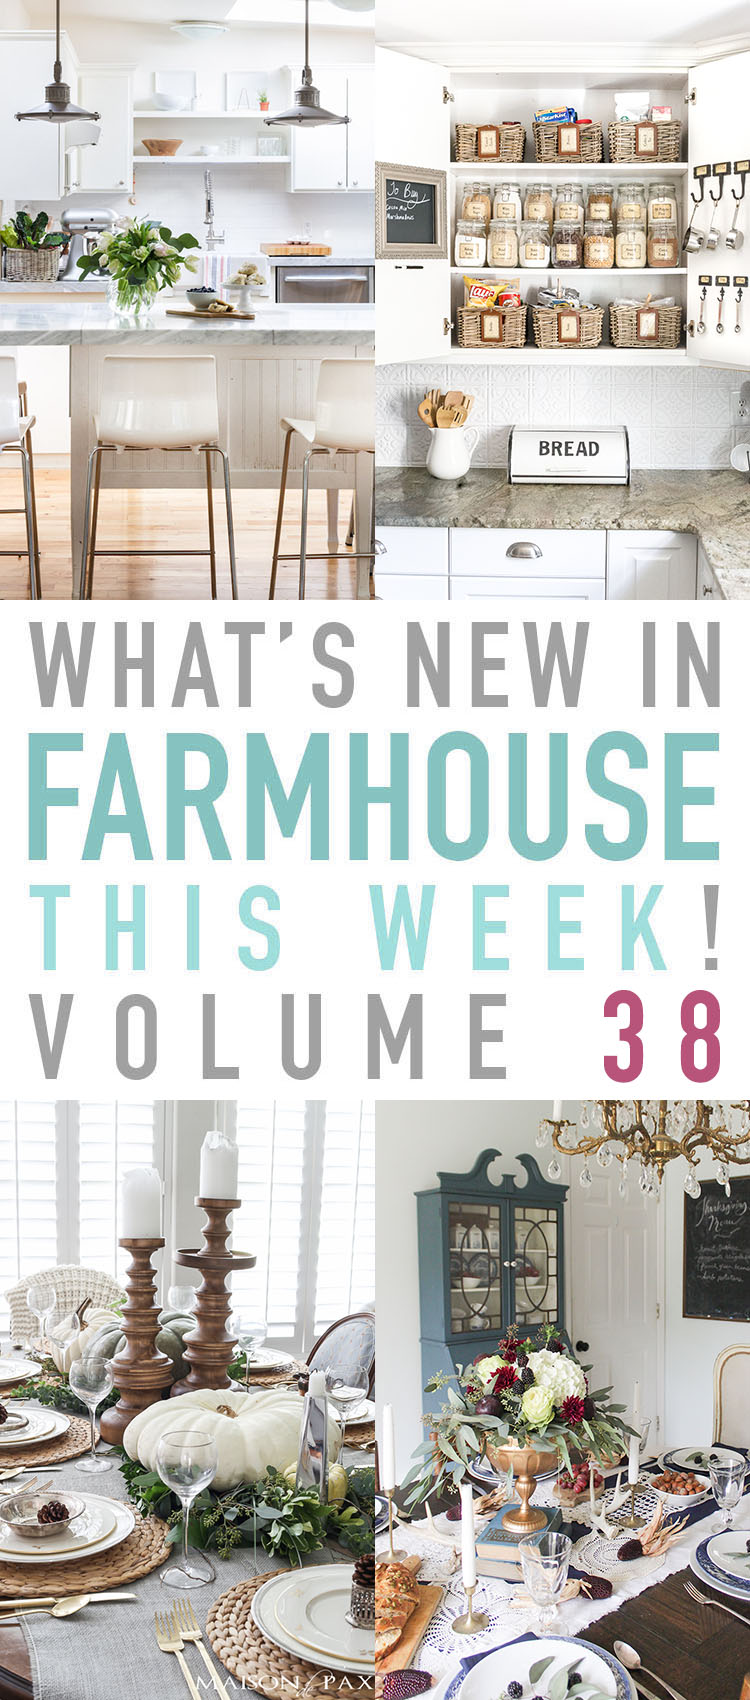 http://thecottagemarket.com/wp-content/uploads/2017/11/FarmhouseToday-t-1-1.jpg